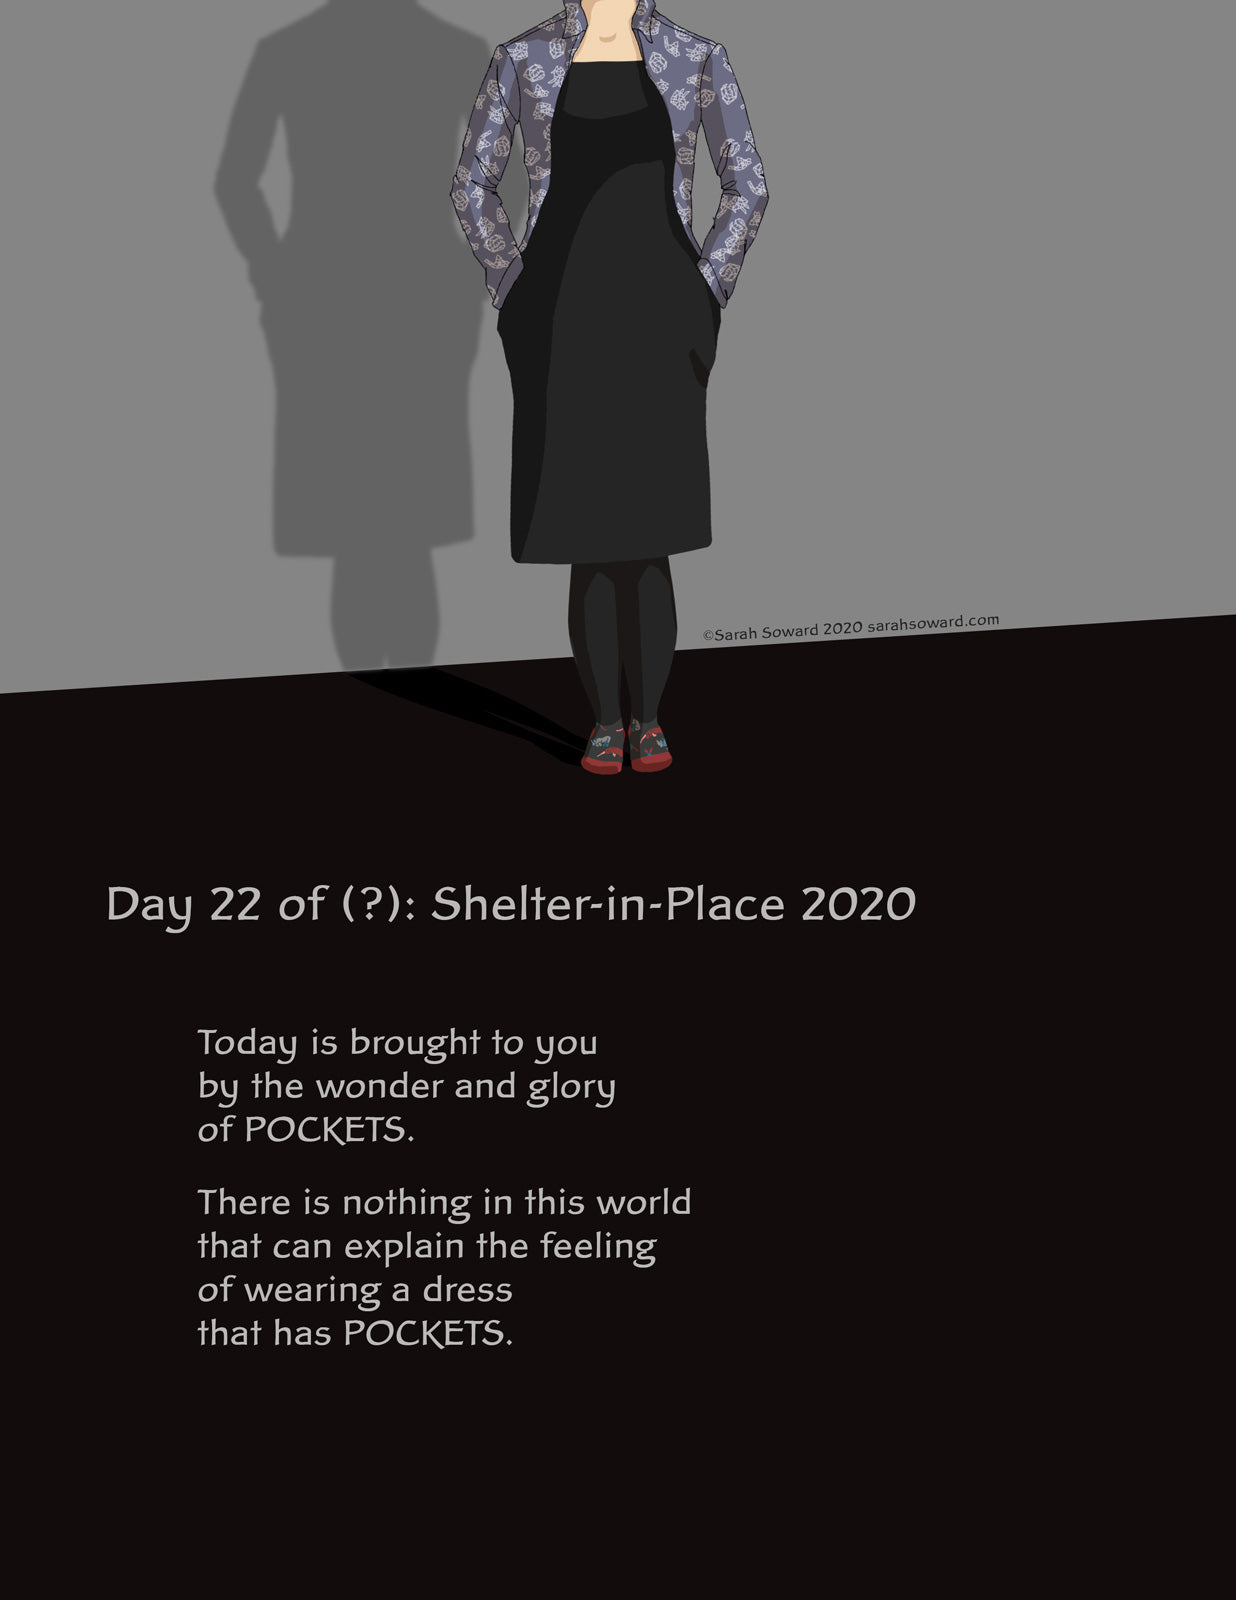 Image of a person wearing a dress with their hands in their pockets. The person's head is cut off so that the viewer can focus on the pockets. the text reads, Today is brought to you by the wonder and glory of POCKETS. There is nothing in this world that can explain the feeling of wearing a dress that has POCKETS.